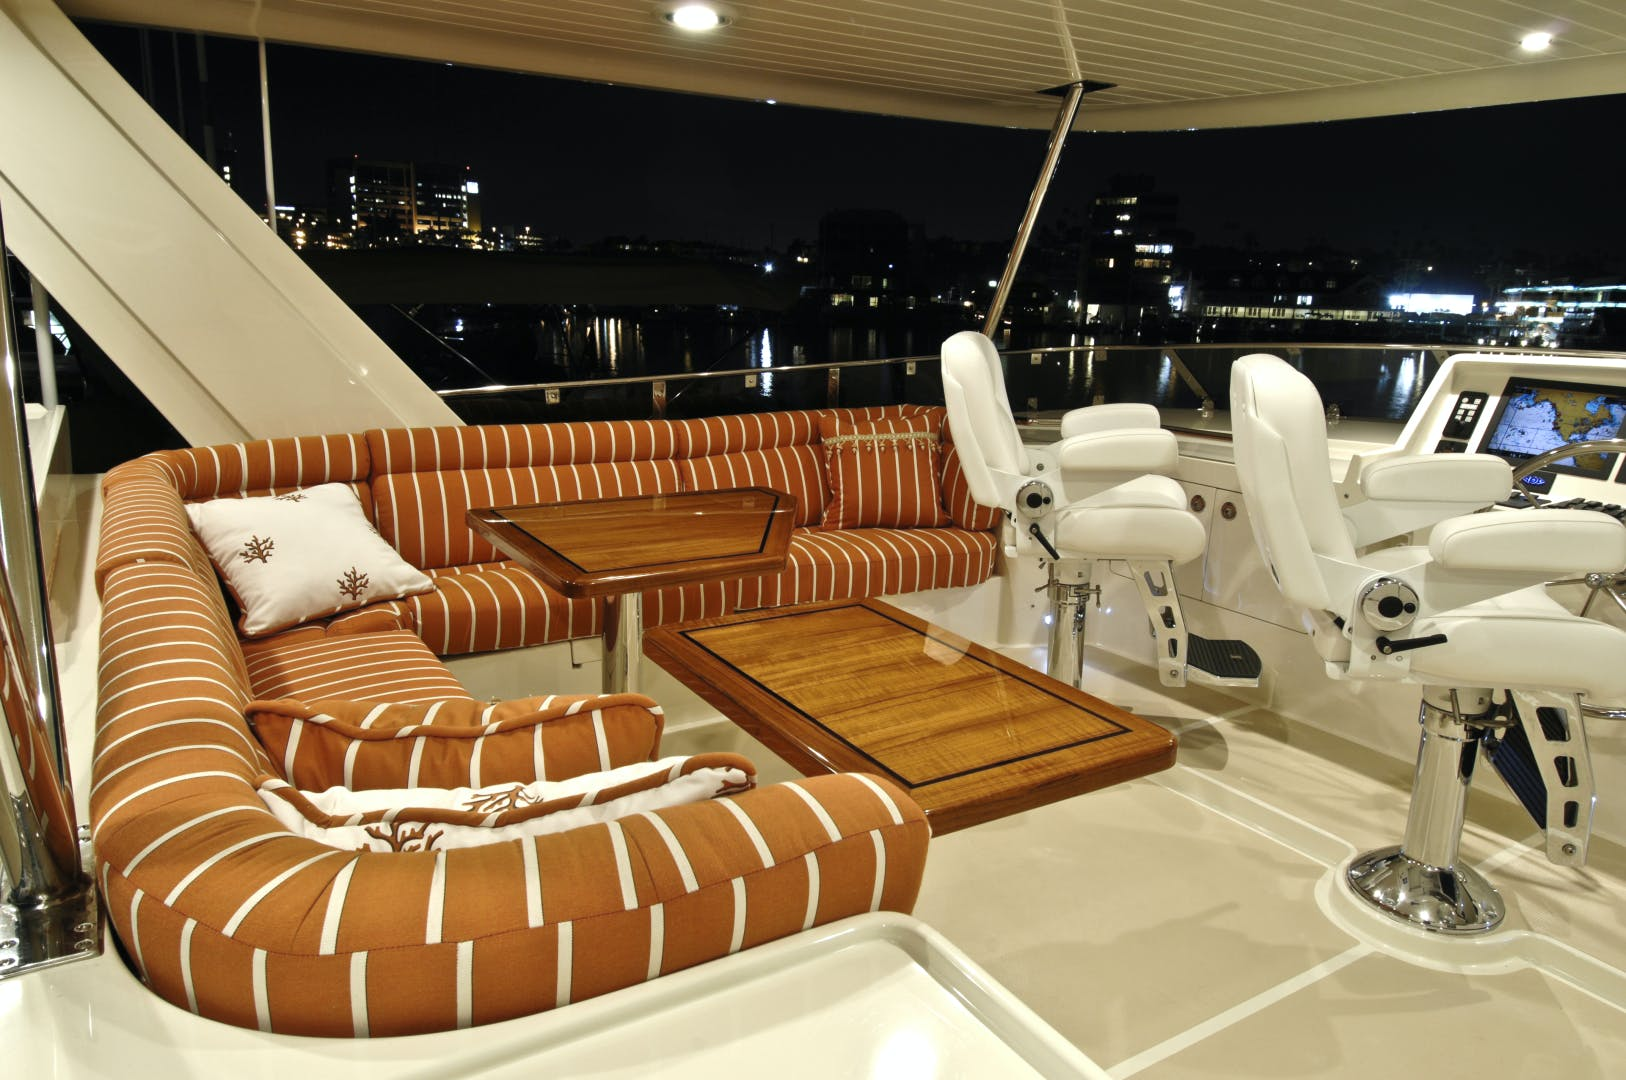 2020 Offshore Yachts 76' 76/80 Motoryacht    Picture 6 of 10